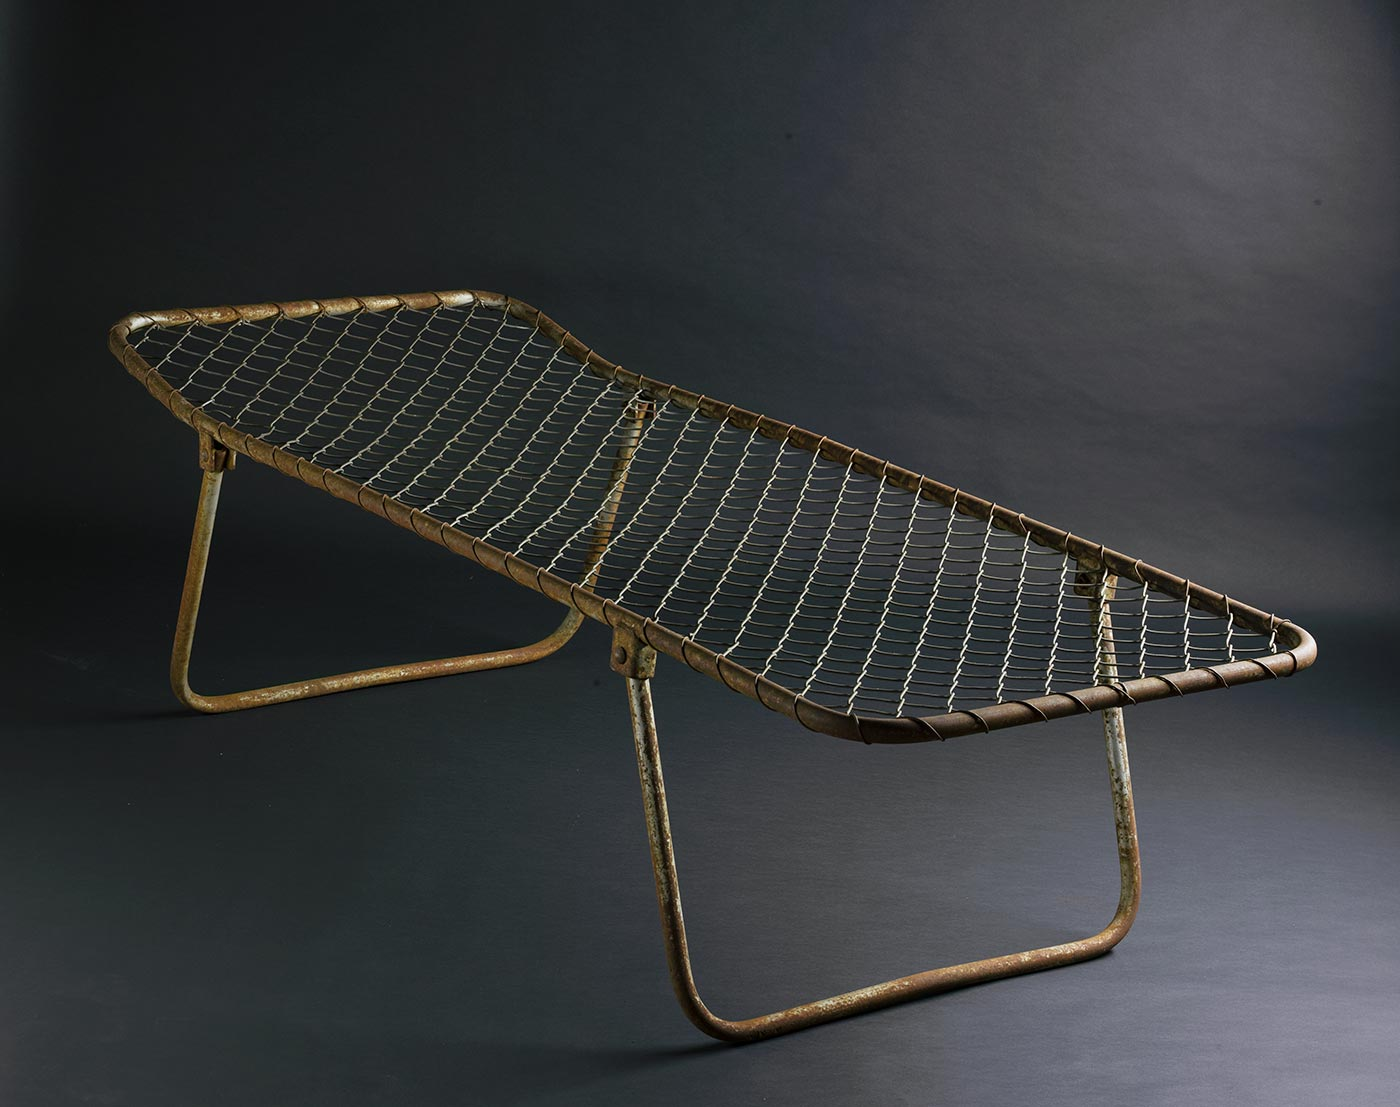 A simple bed with a metal frame, raised slightly at one end. The top of the frame is covered with wire mesh and there are two folding legs underneath. - click to view larger image